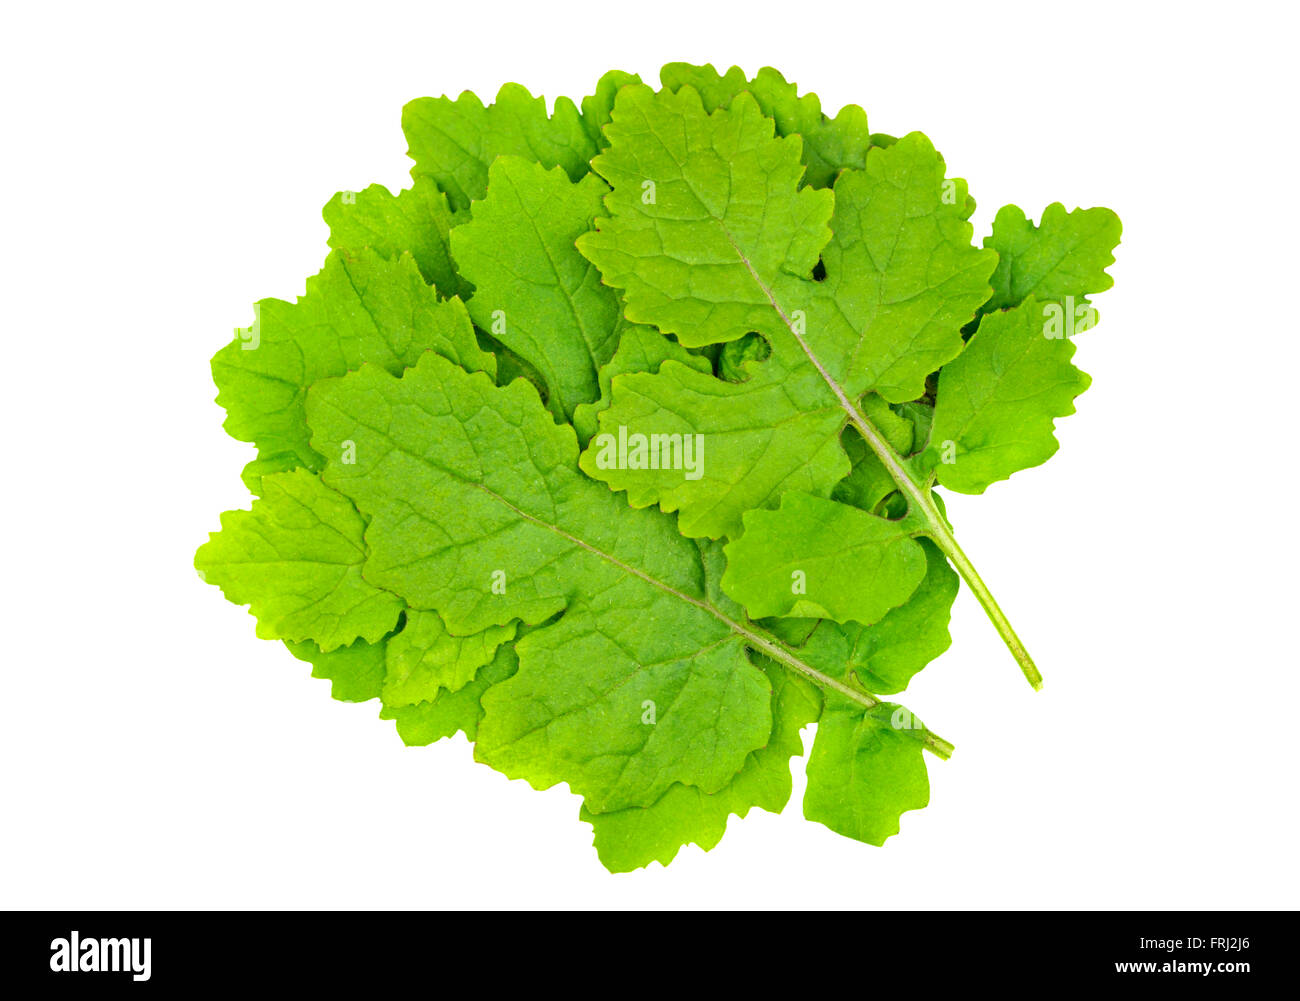 Mustard leaves also called White Mustard, Sinapis Alba, Brassica Alba or Brassica Hirta and used as a culinary ingredient. - Stock Image